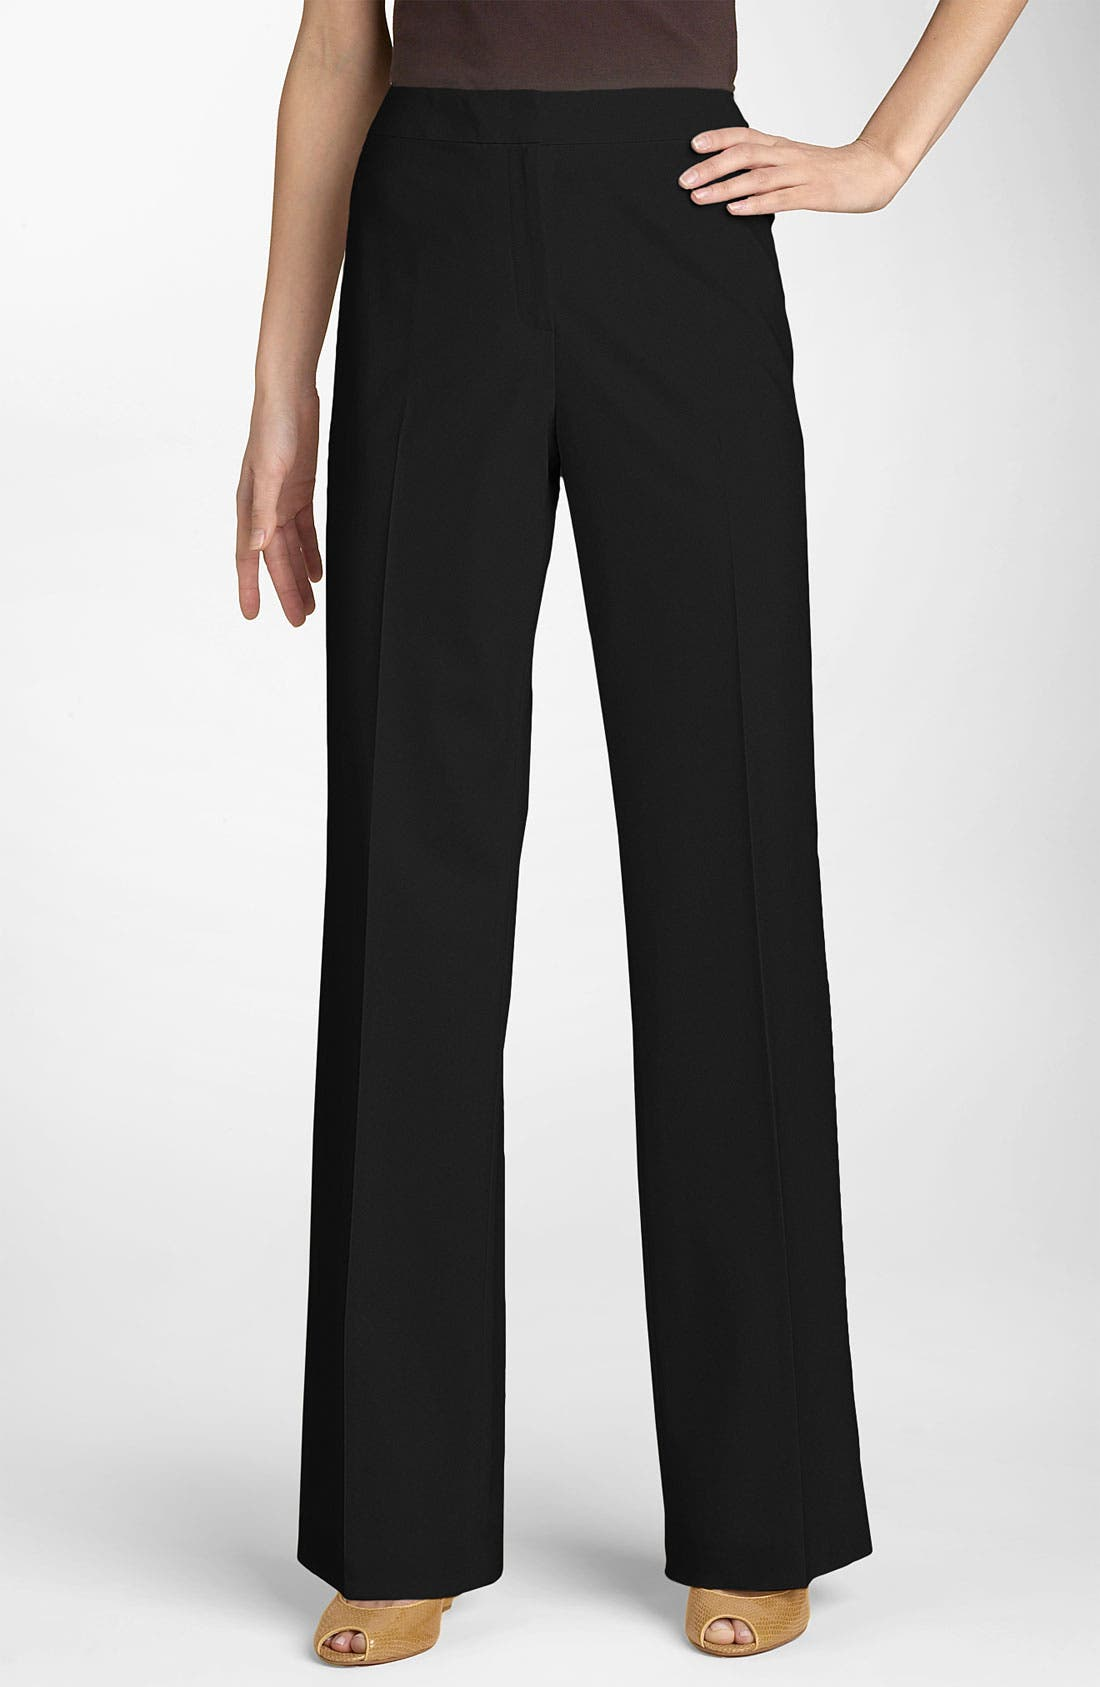 Main Image - Lafayette 148 New York 'Menswear' Trousers (Regular & Petite)